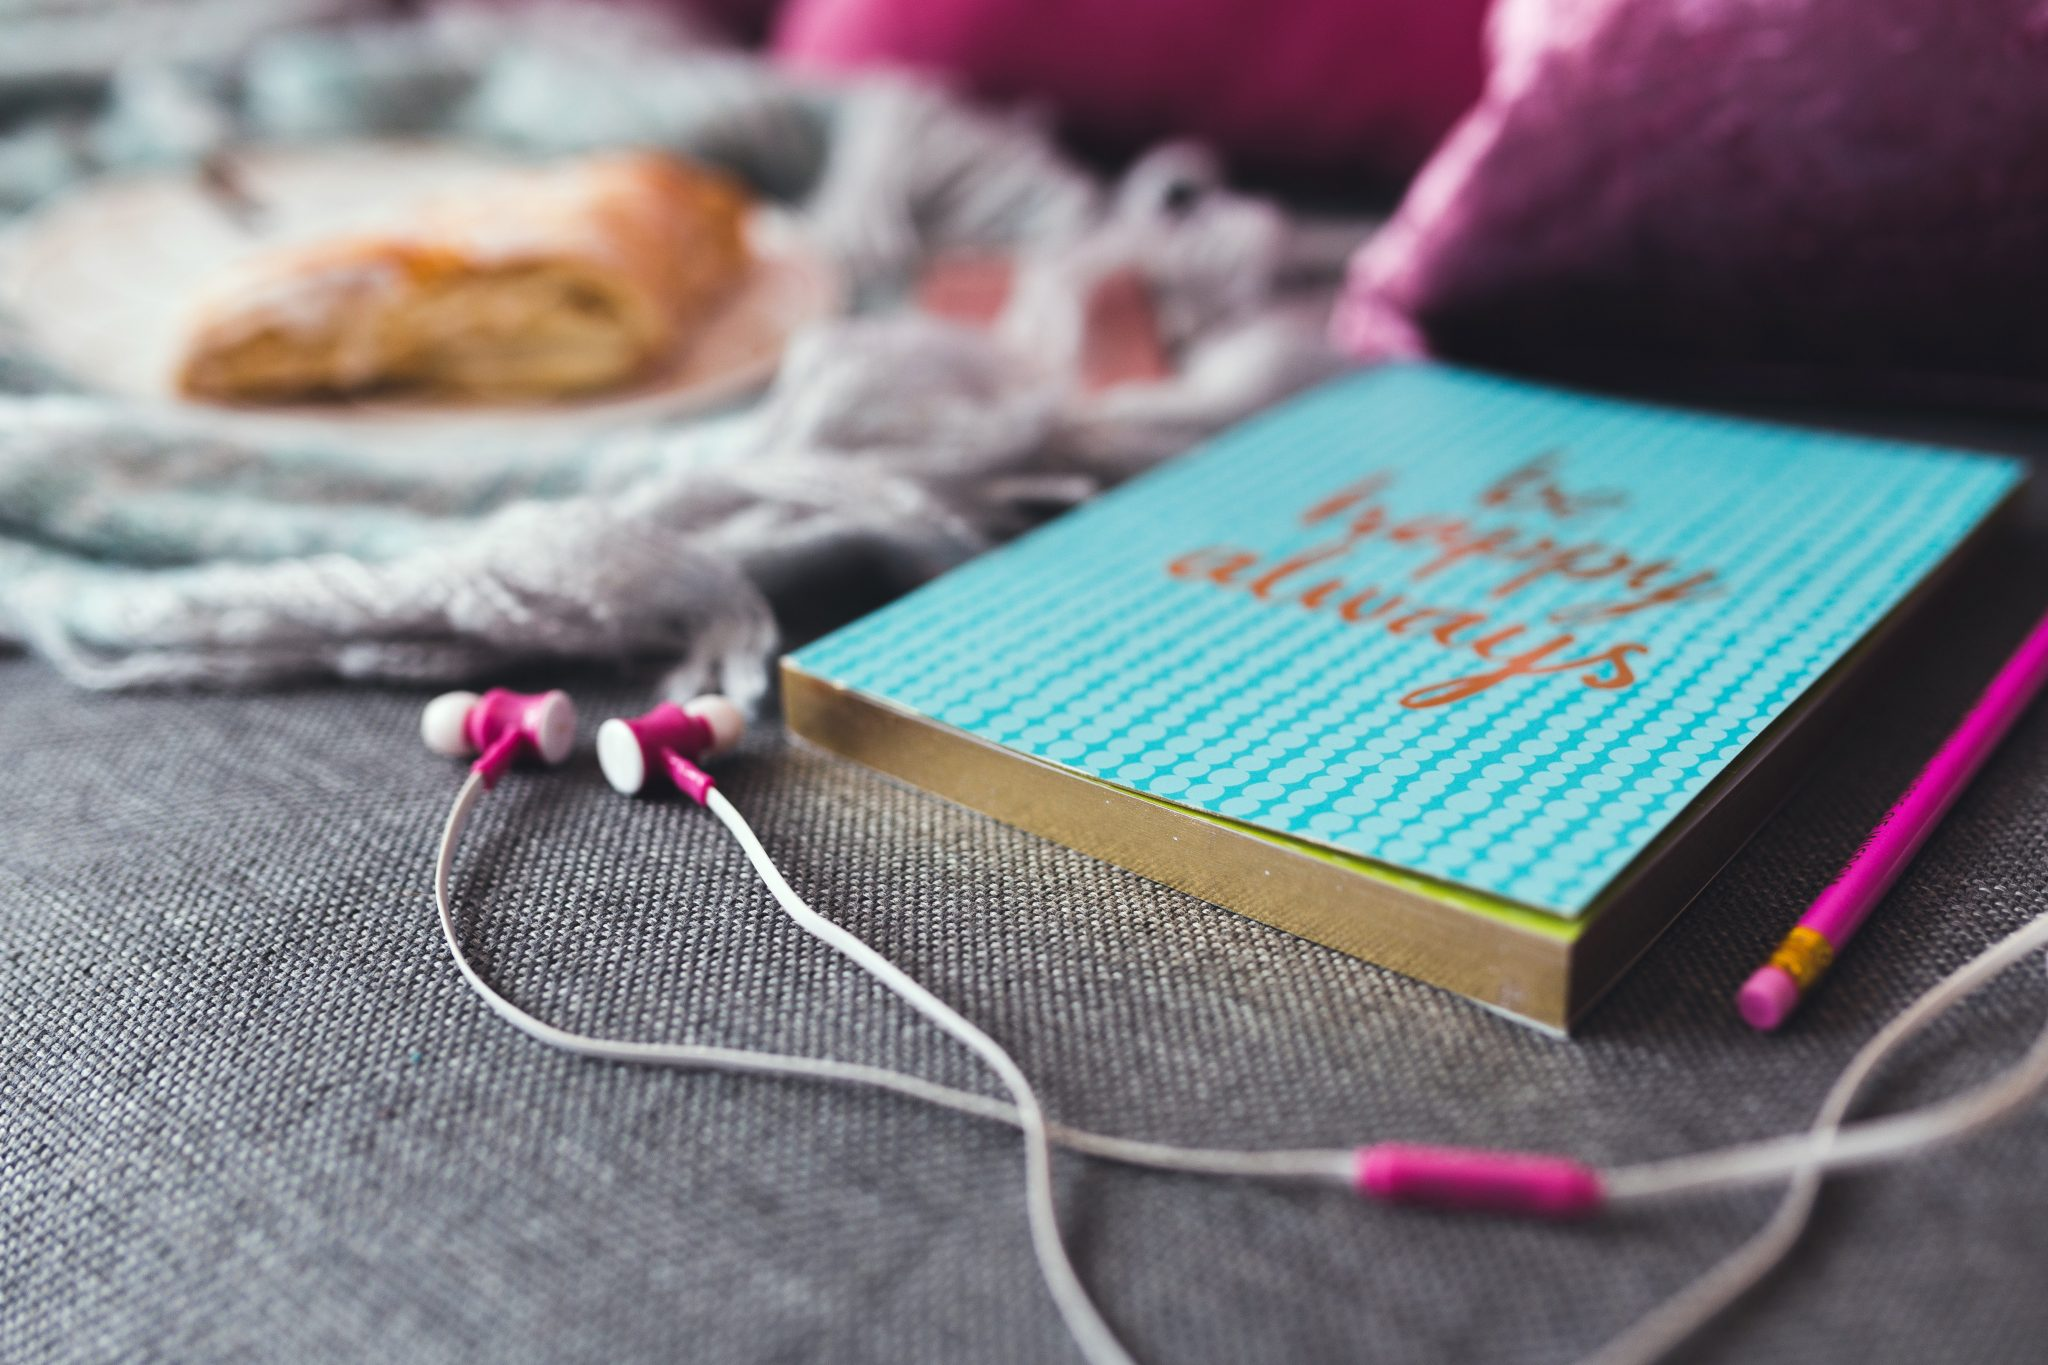 Best Earbuds For ASMR in 2019